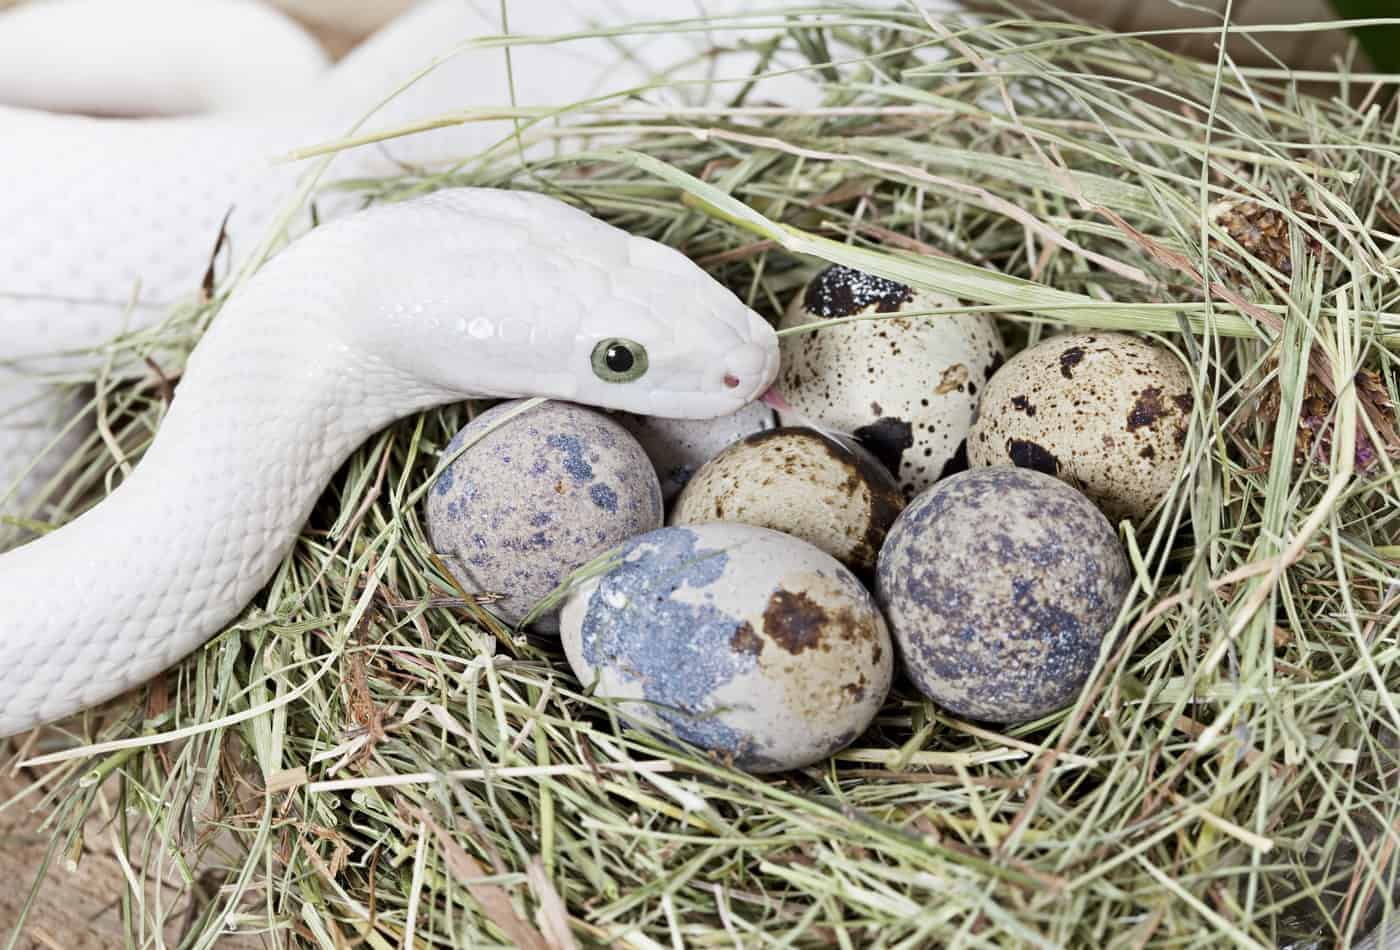 How Many Eggs Do Snakes Lay and How Many Survive?